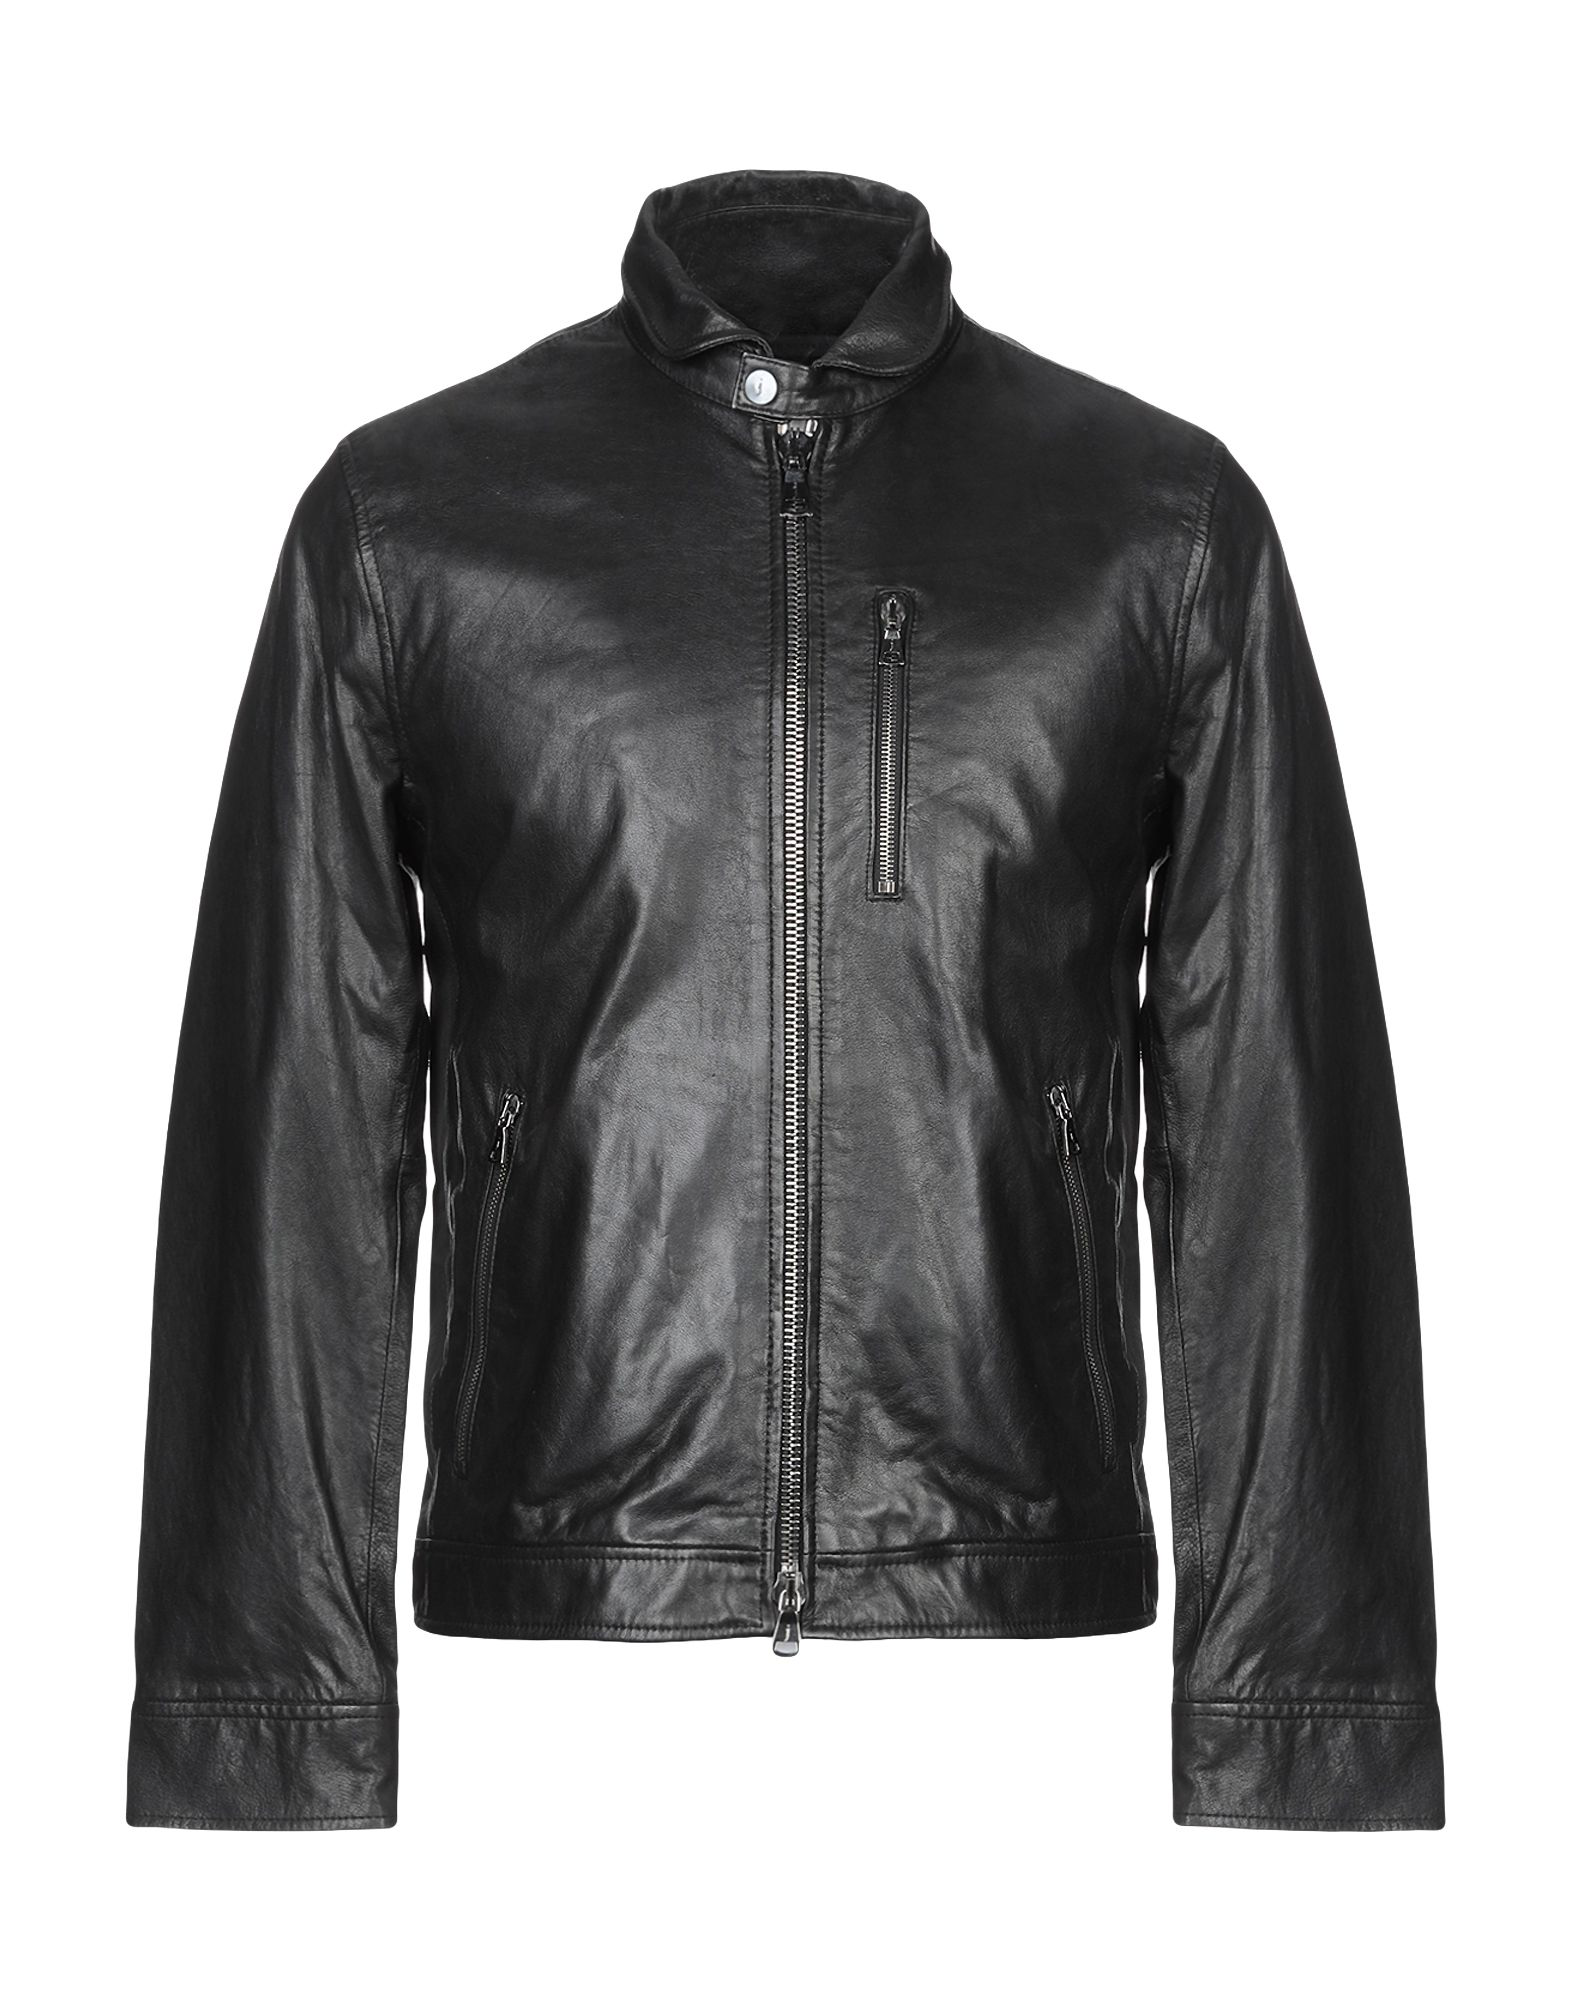 John Varvatos Leather Jacket In Black